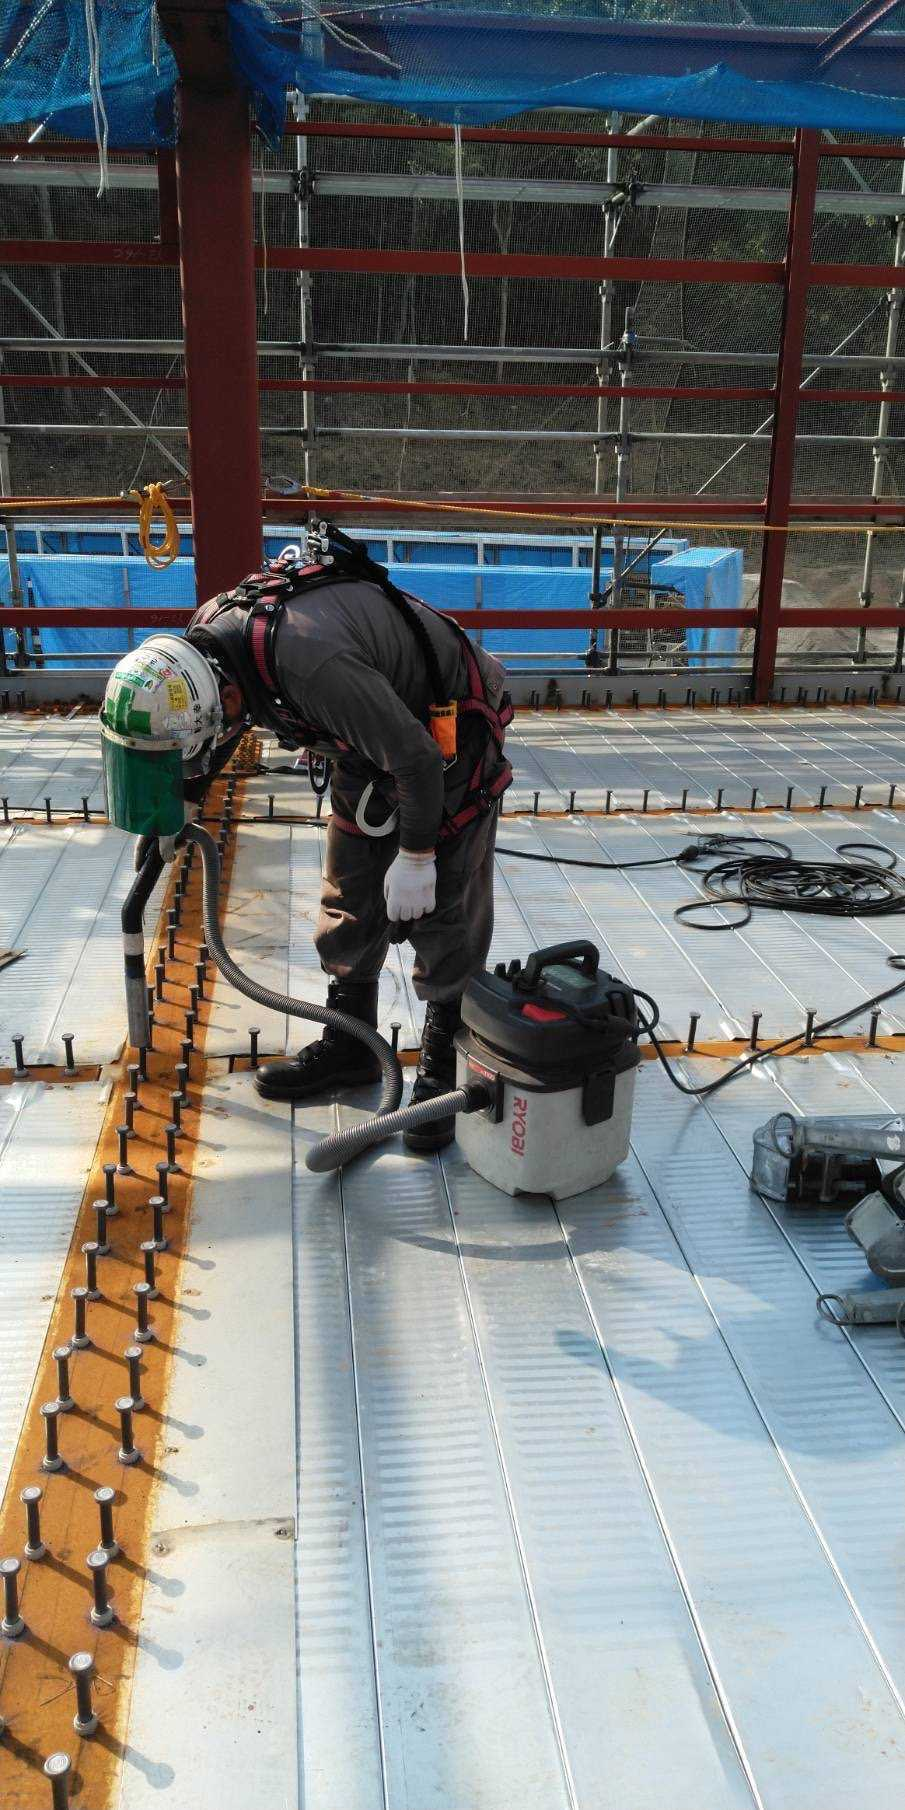 【Aichi, Nagoya】Work to clean and carry electric wires at the construction site of a building